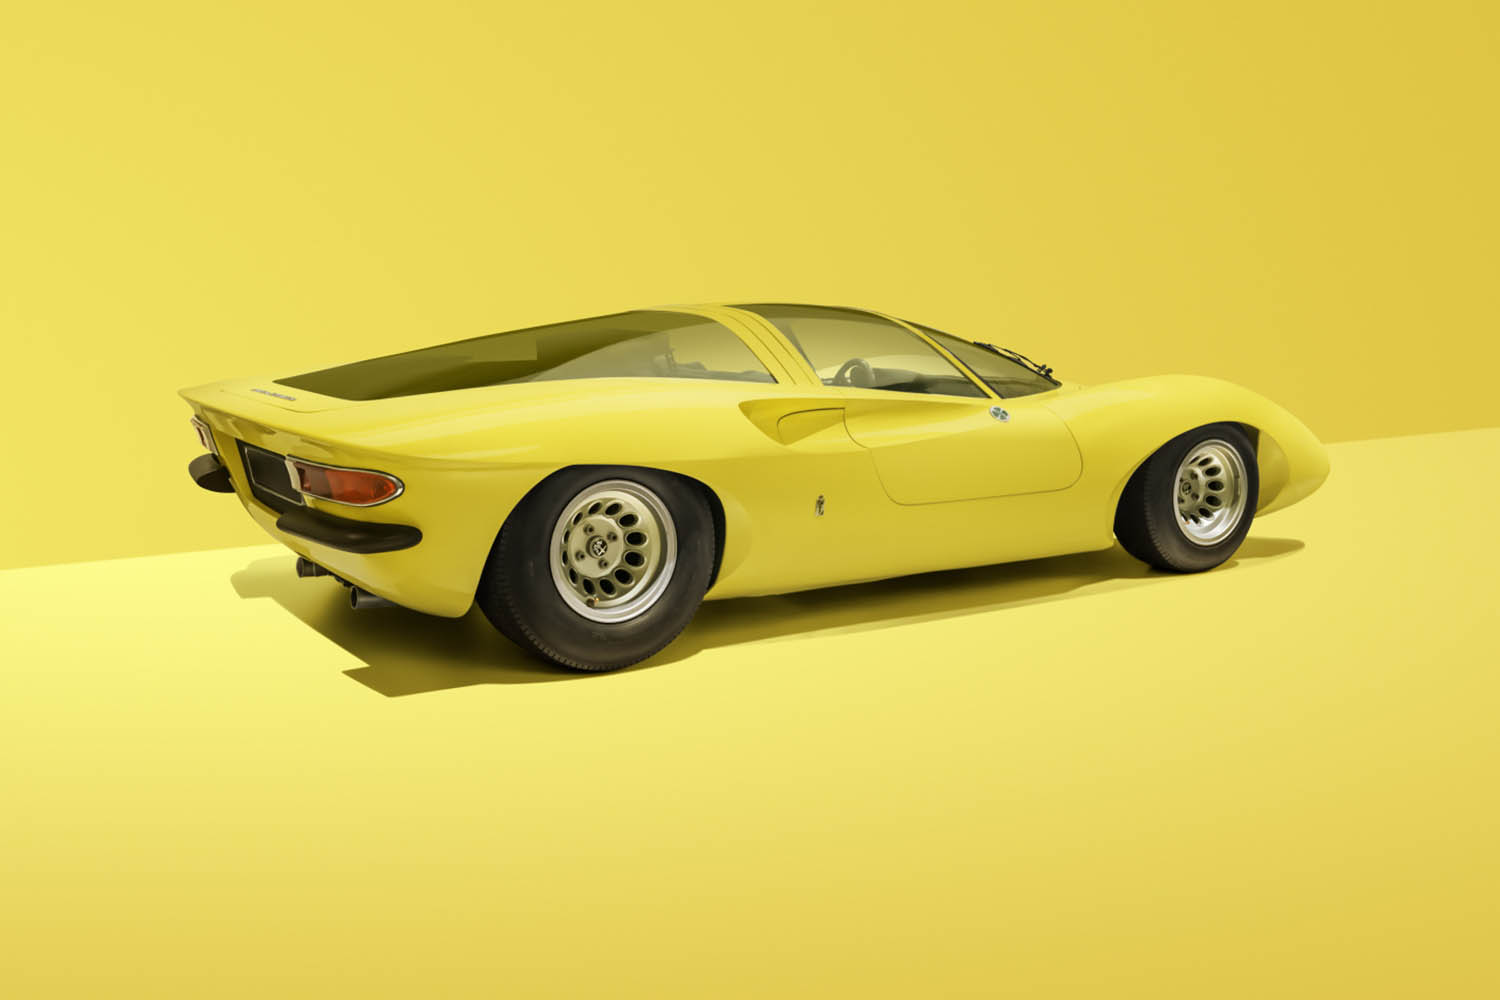 WEDGED_WONDERS_AFLA_ROMEO_33_COUPE_SPECIALE_REAR-34-1423x1660.jpg